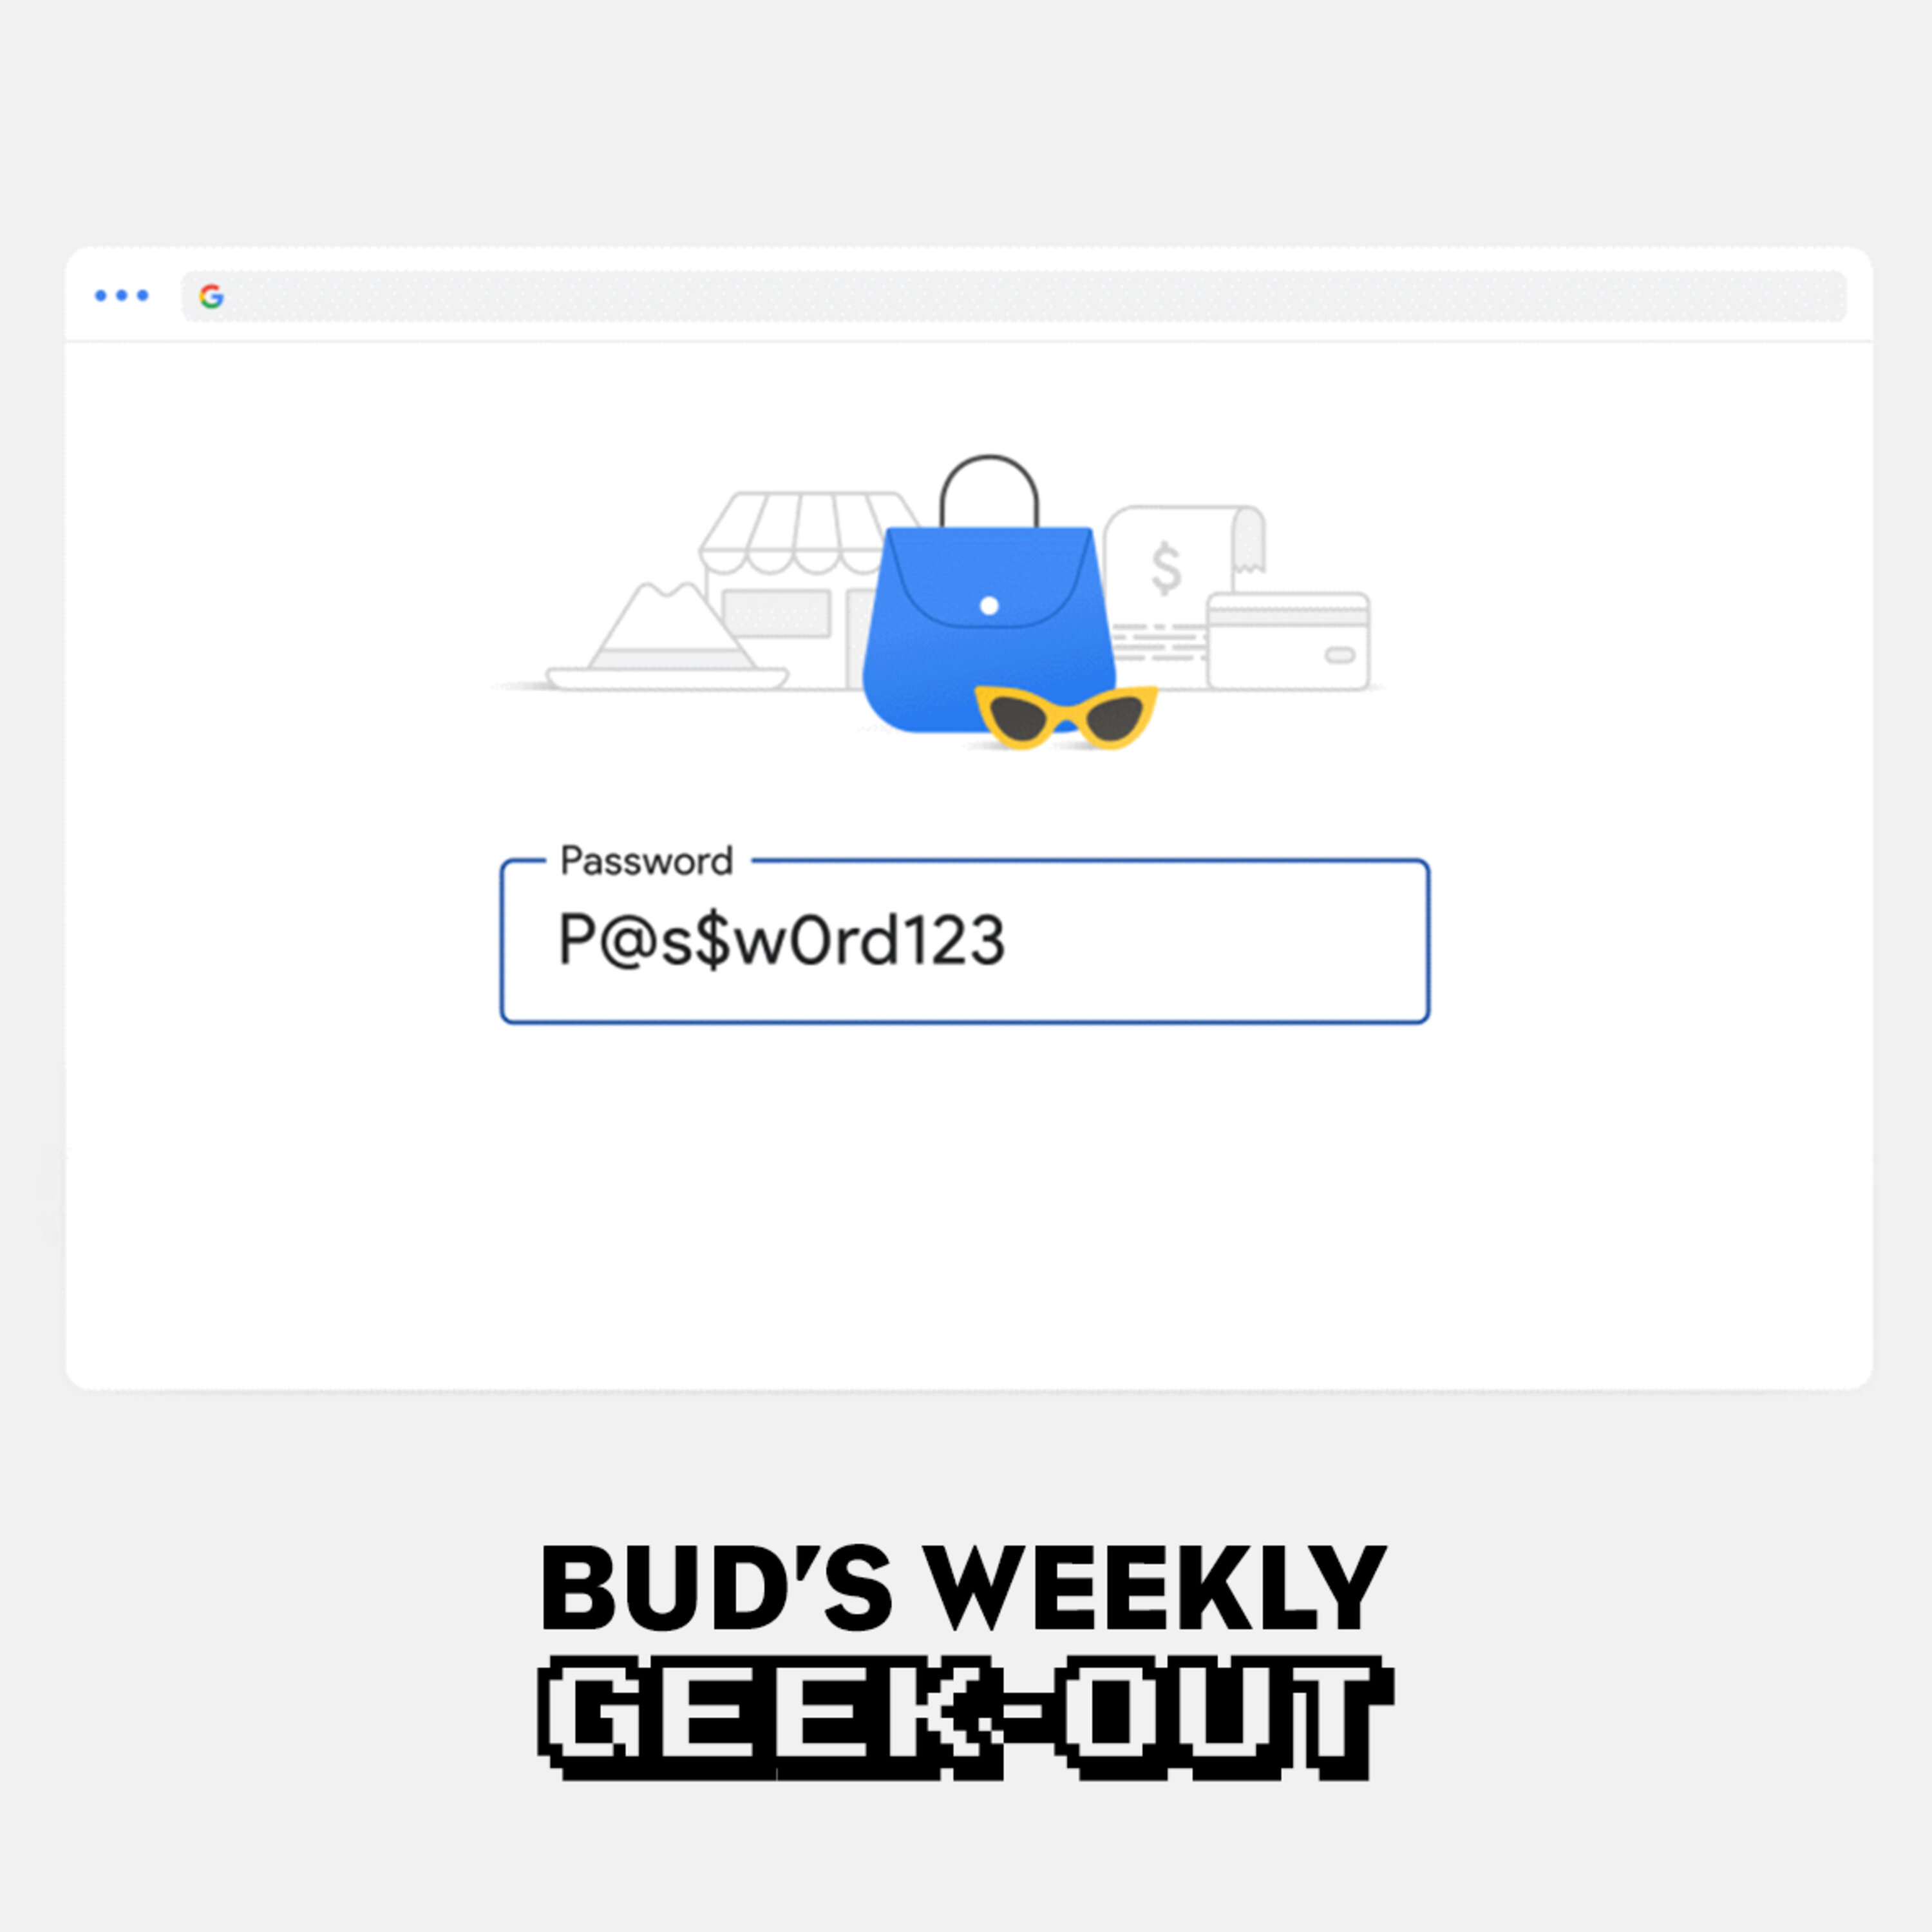 Bud's Weekly Geek-out! 20210512 - Google auto-2FA